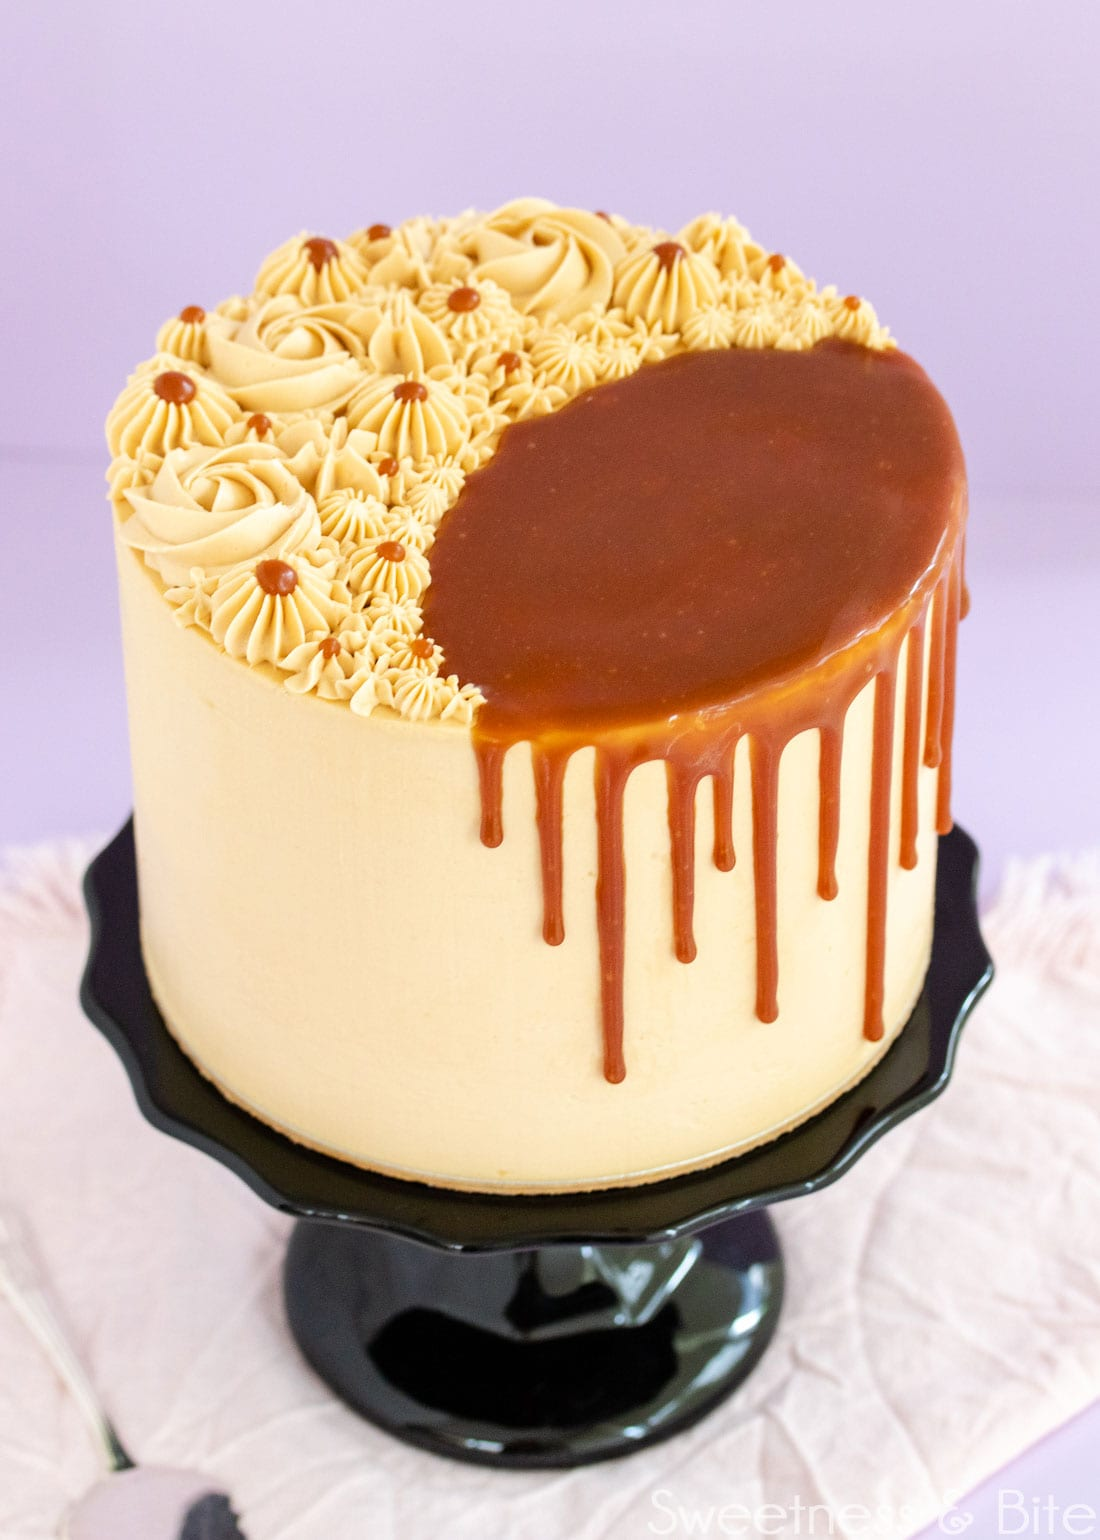 Caramel mud cake on a black cake stand, decorated with swirls of caramel buttercream on top, and a caramel sauce drip.